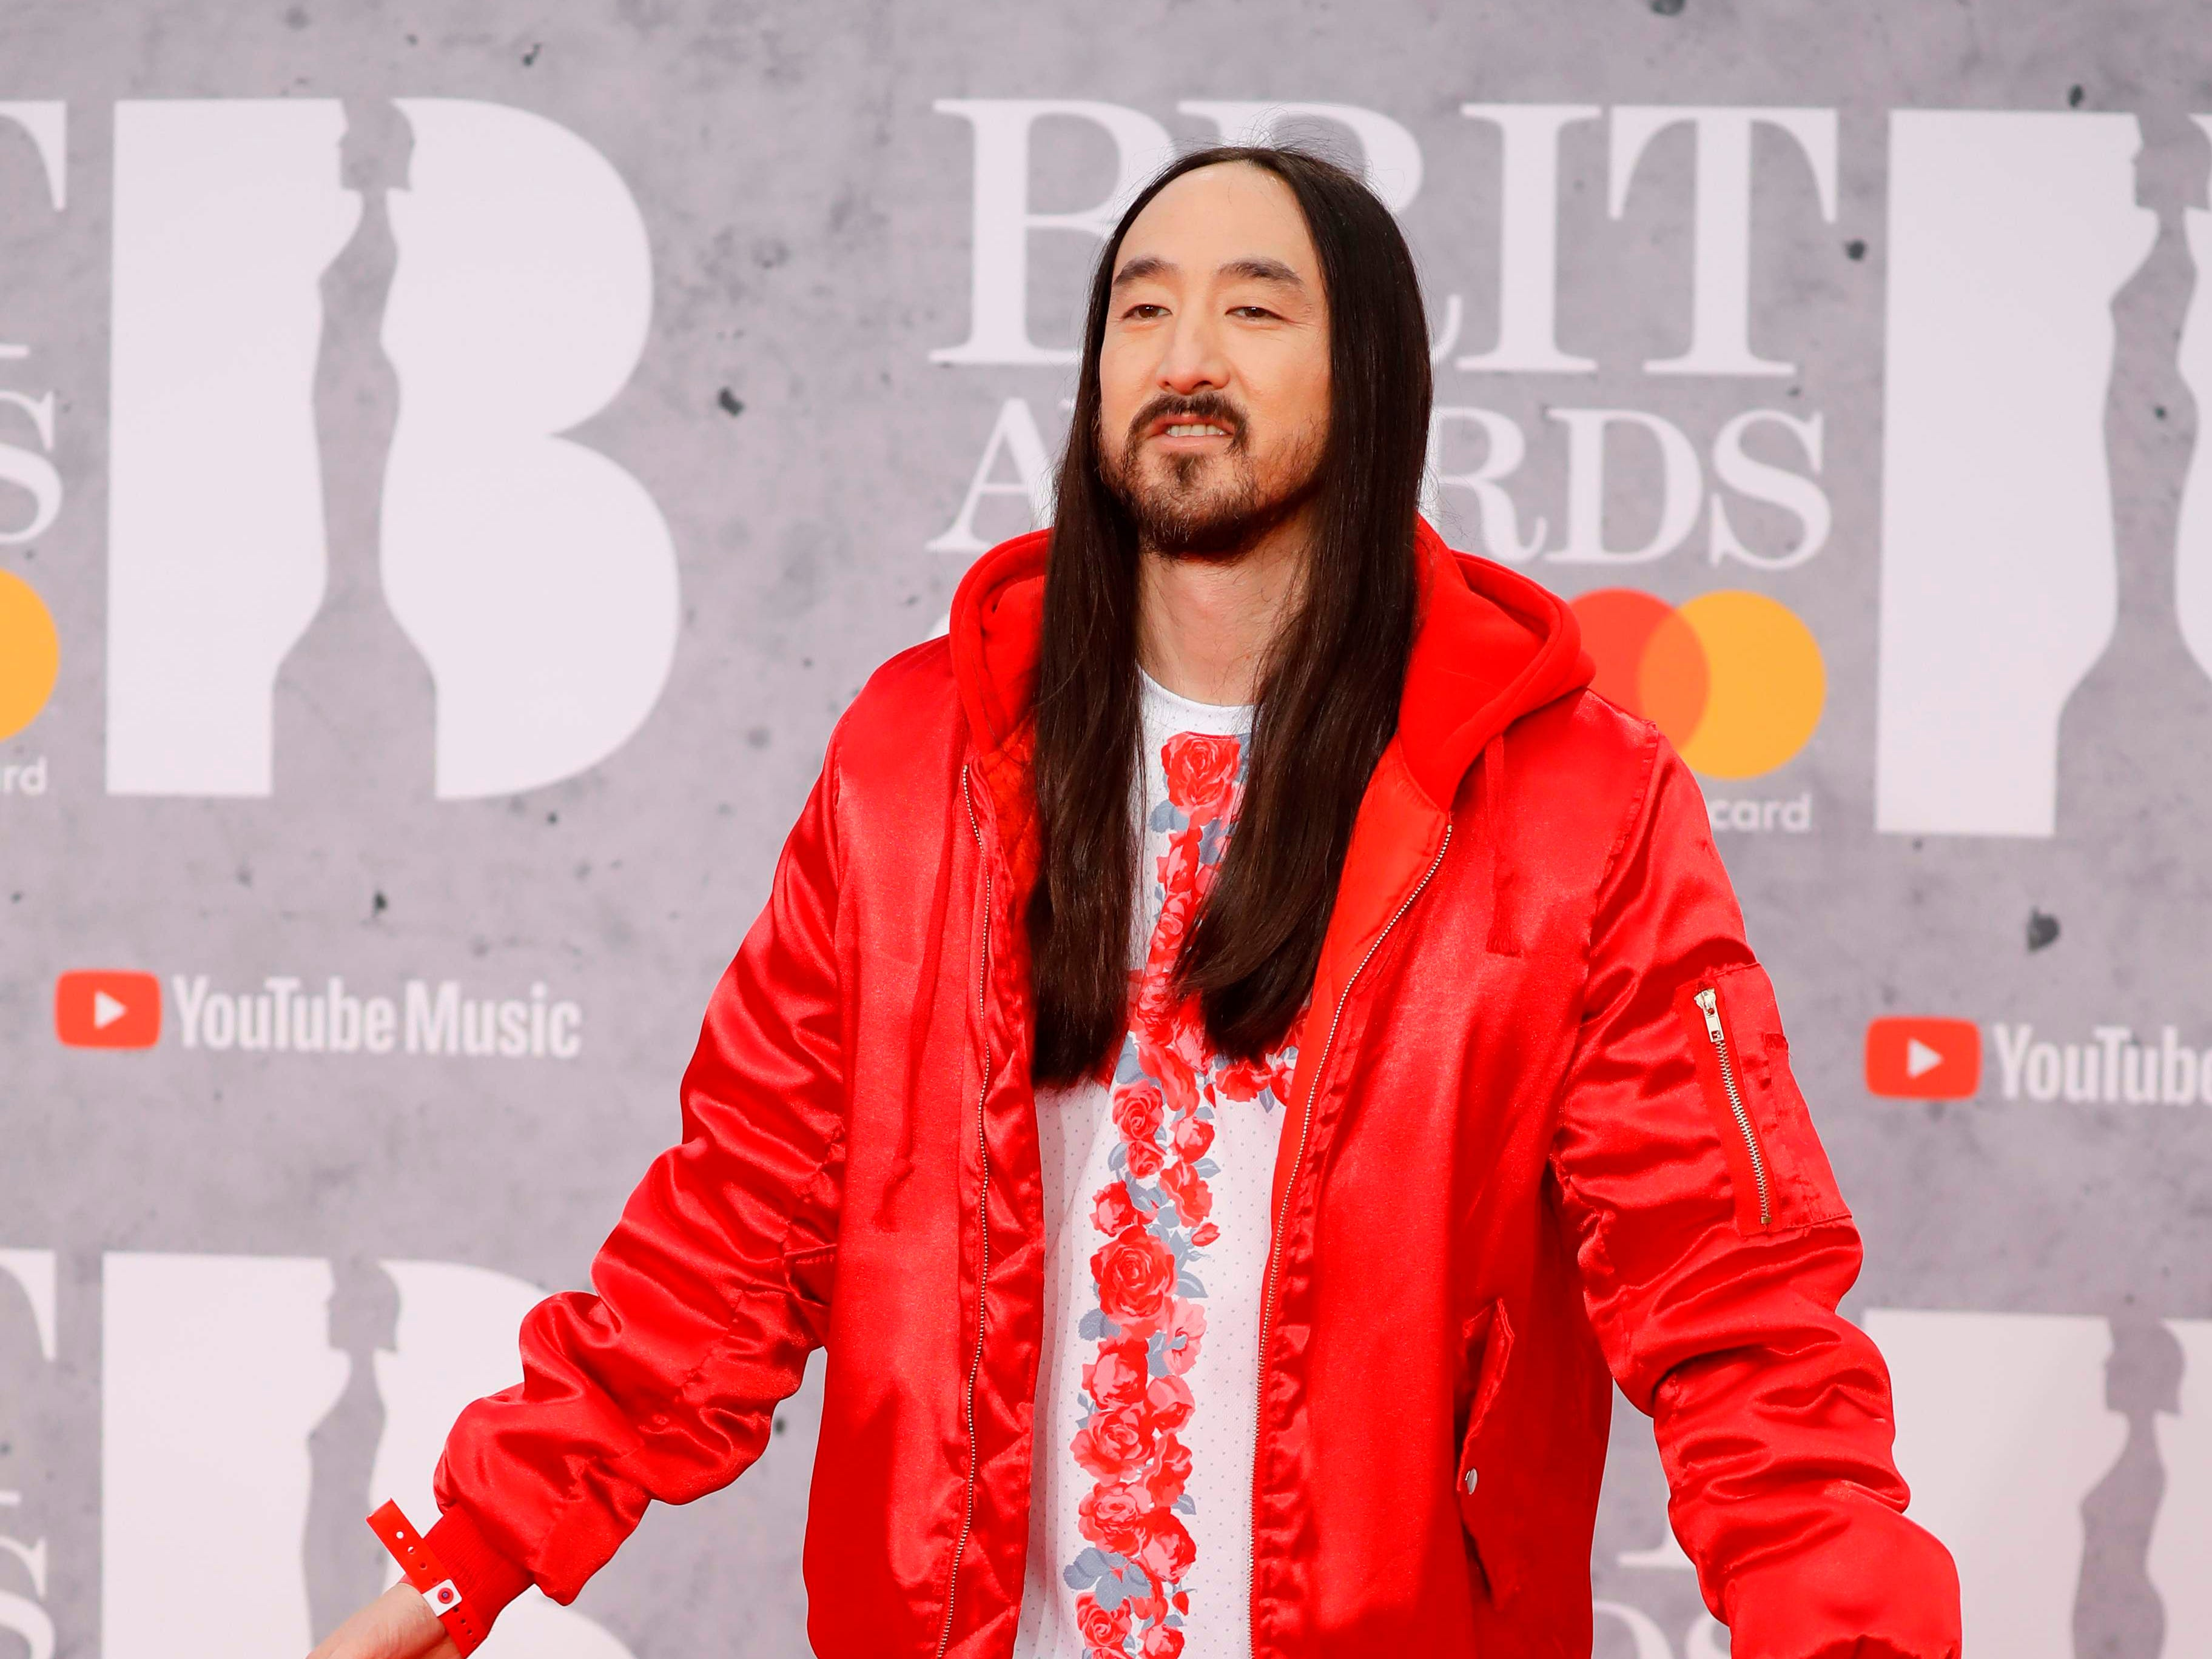 US musician Steve Aoki poses on the red carpet on arrival for the BRIT Awards 2019 in London on February 20, 2019. (Photo by Tolga AKMEN / AFP) / RESTRICTED TO EDITORIAL USE  NO POSTERS  NO MERCHANDISE NO USE IN PUBLICATIONS DEVOTED TO ARTISTSTOLGA AKMEN/AFP/Getty Images ORIG FILE ID: AFP_1DO07N